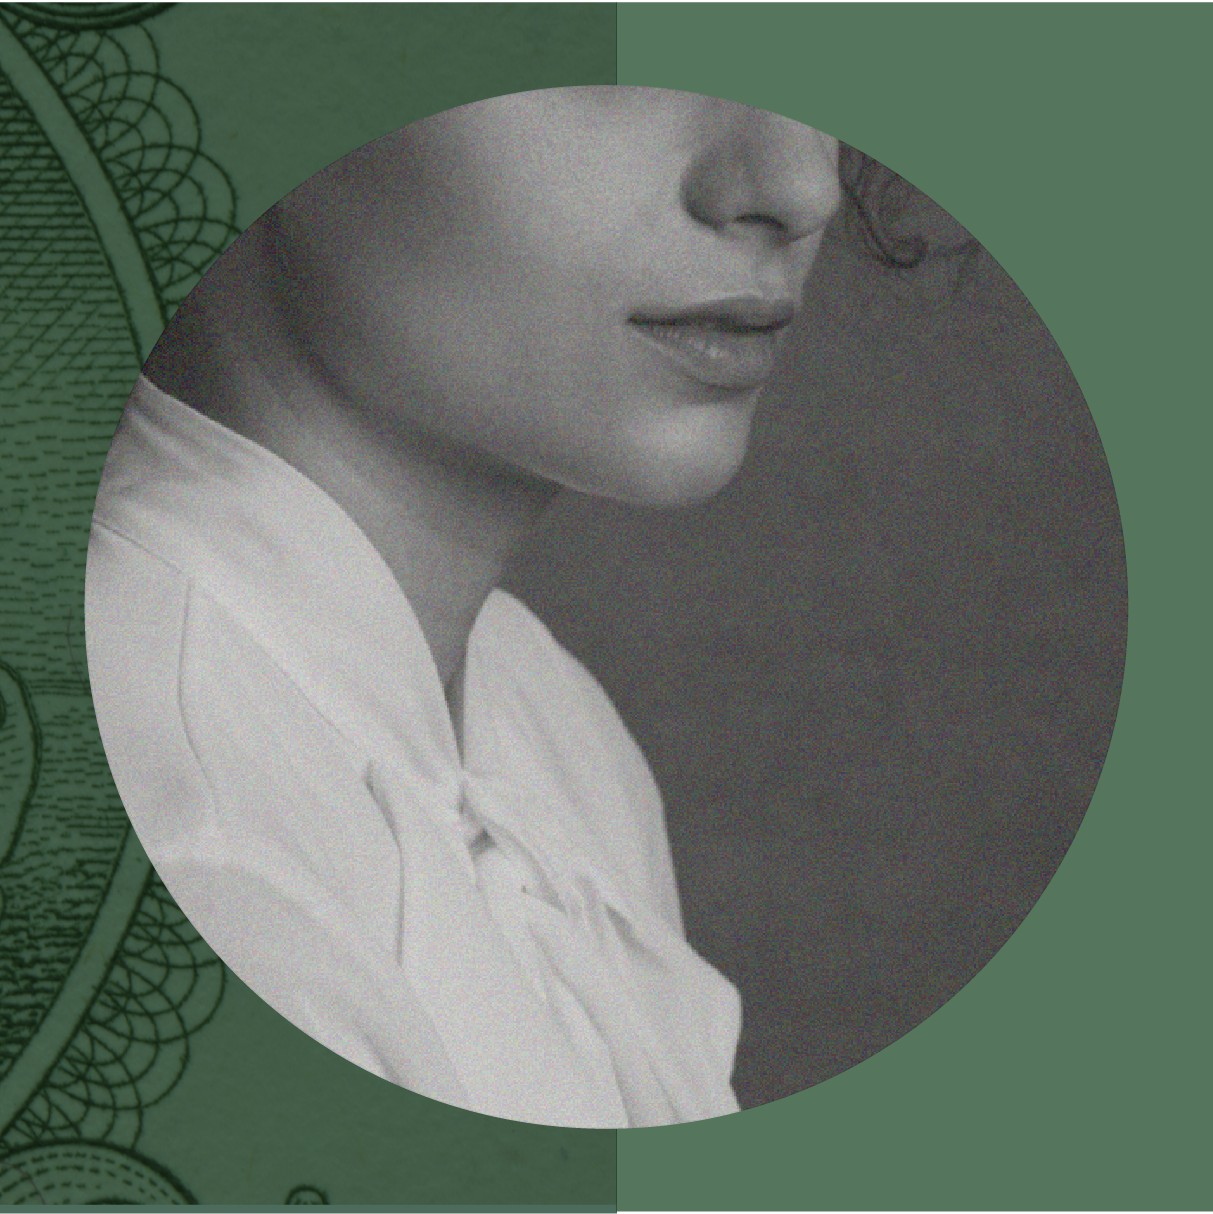 A black and white photo of a woman on top of a dollar bill. Illustration.